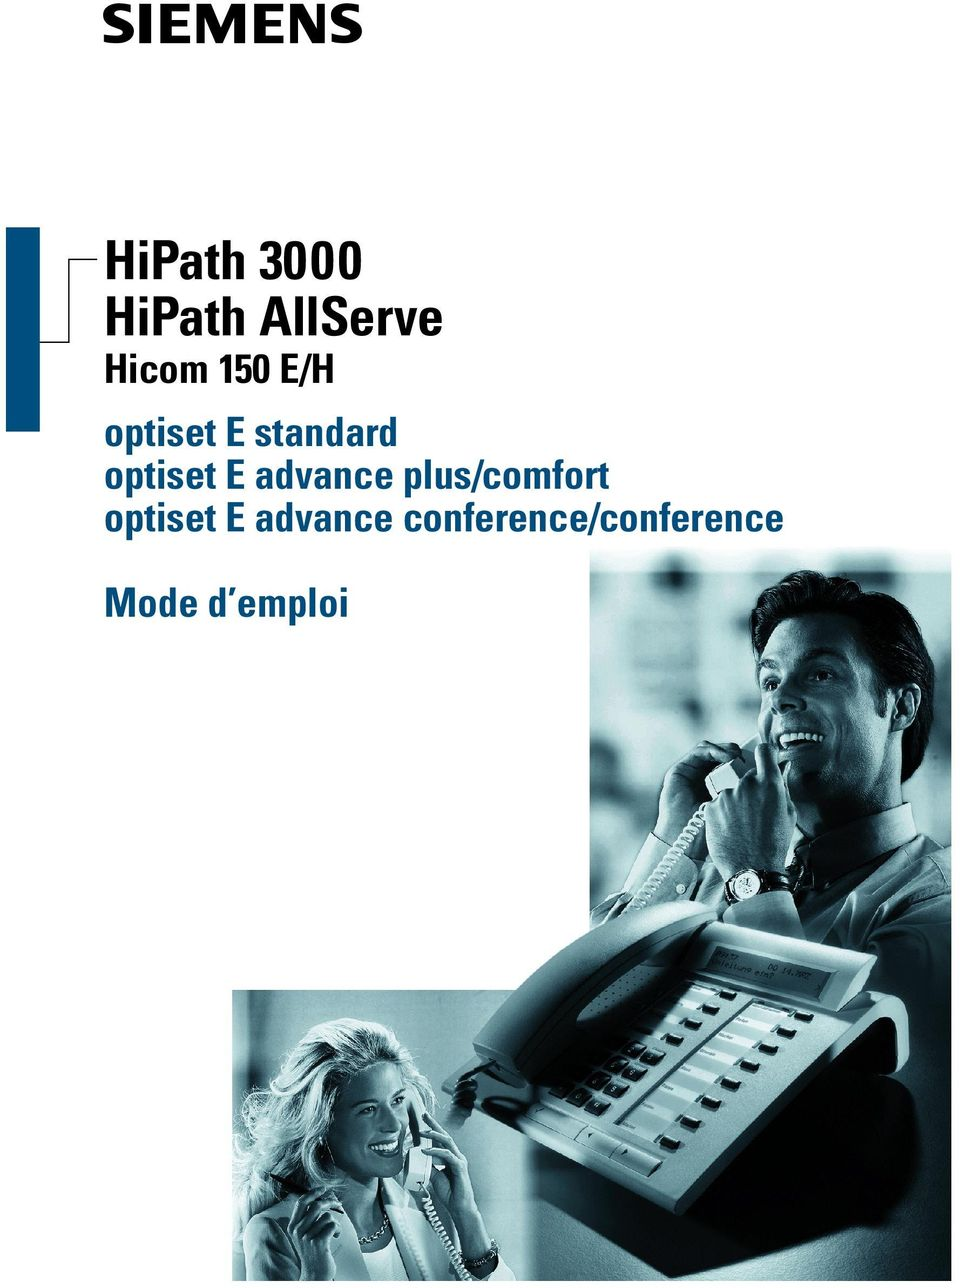 advance plus/comfort optiset E